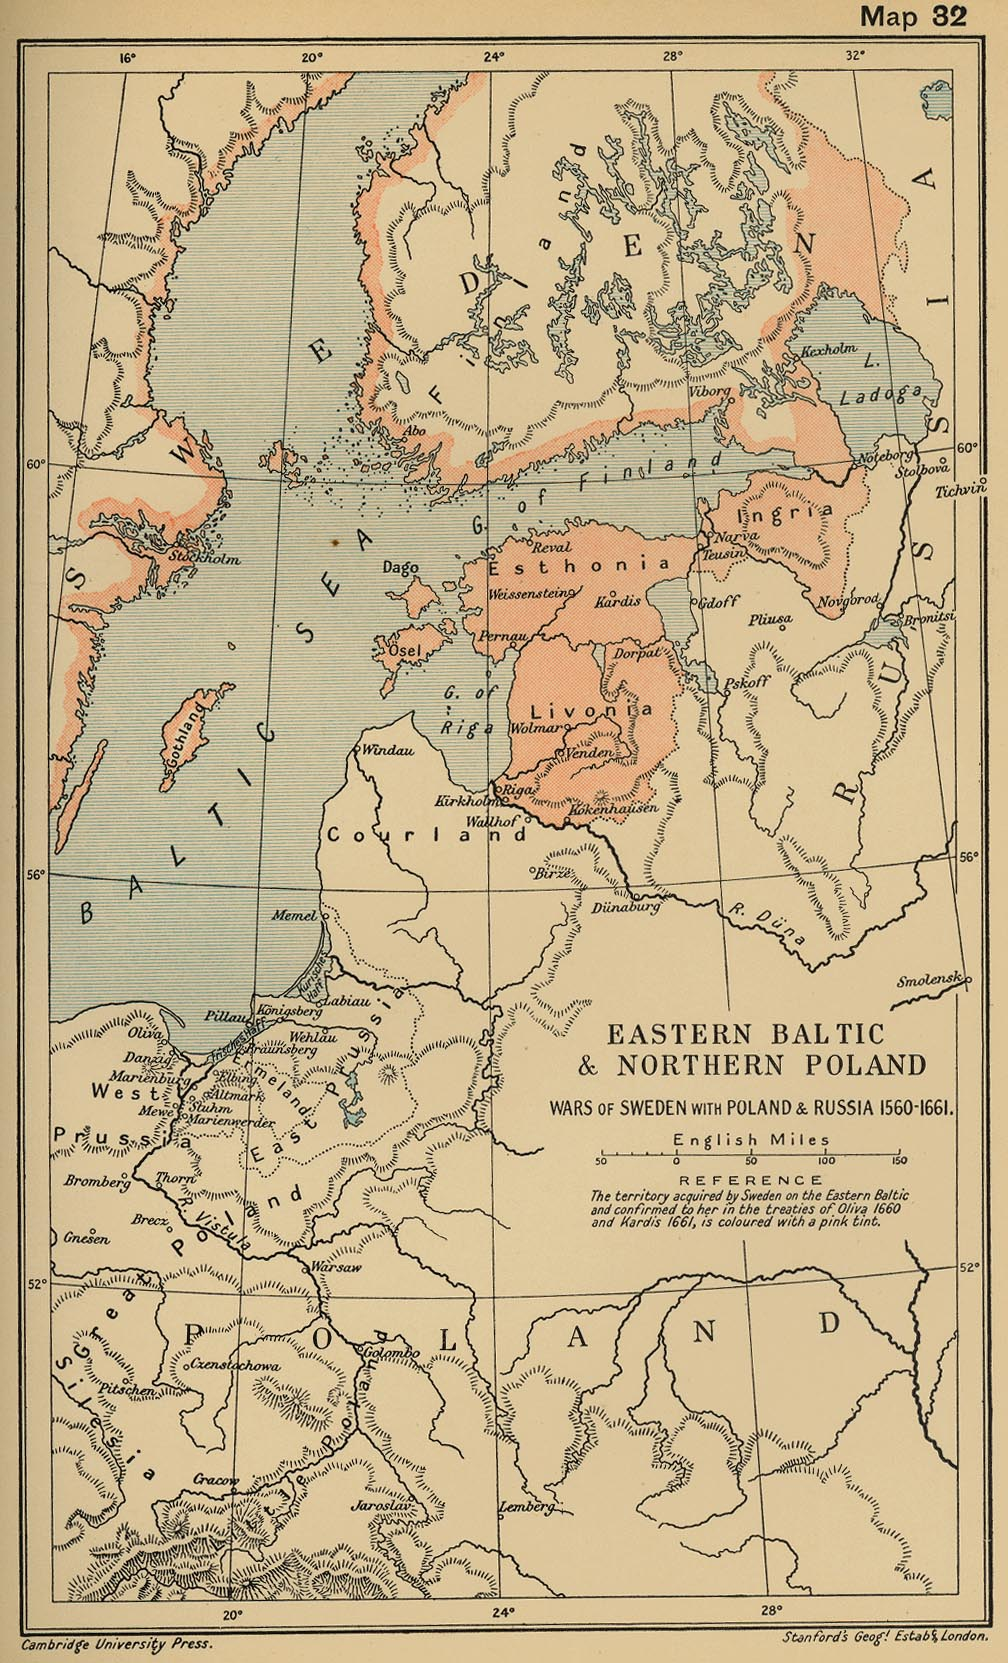 map 31 eastern baltic and northern poland wars of sweden with poland and russia 1560 1661